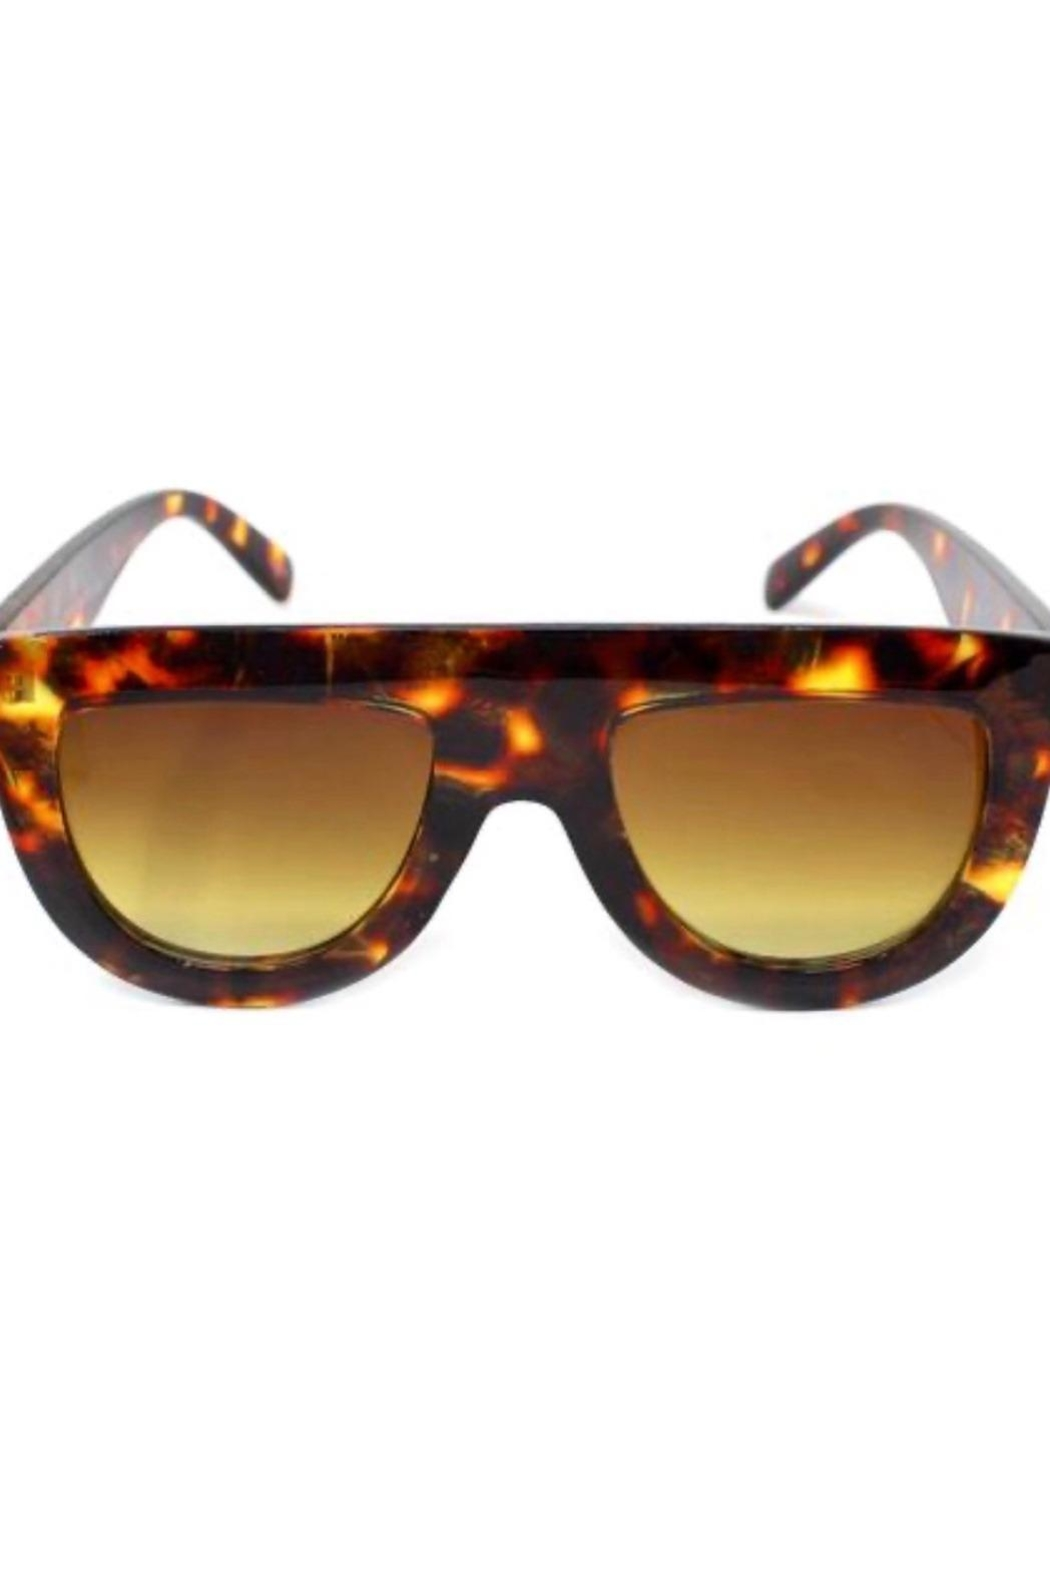 US Jewelry House Tortoiseshell Sunglasses - Main Image